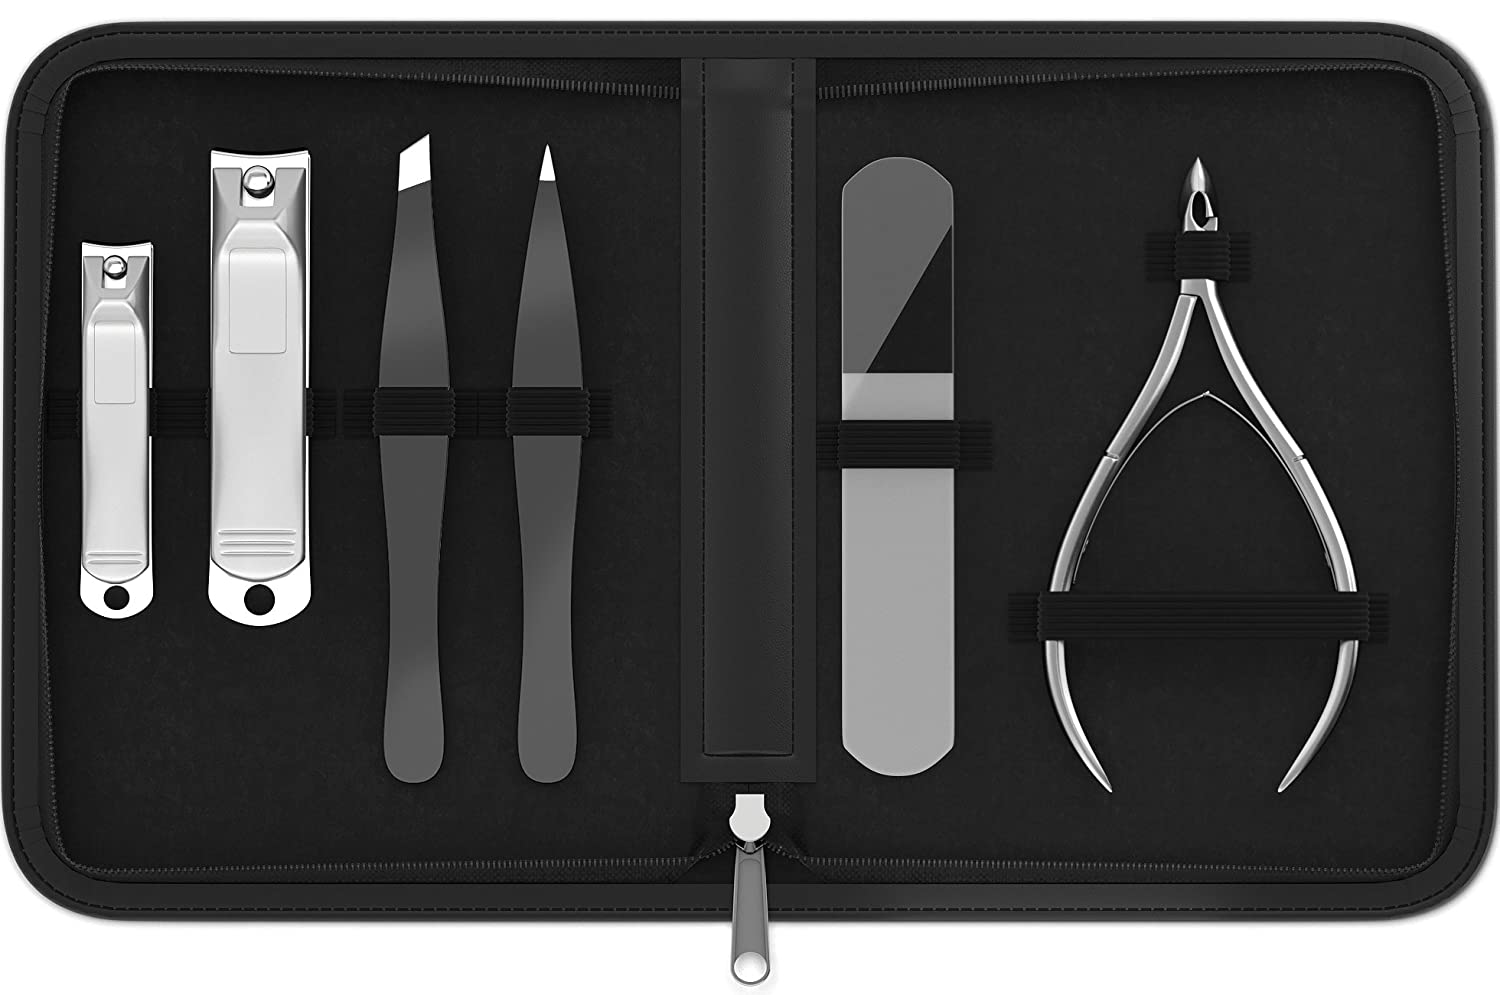 Manicure & Pedicure for Women and Men -Shear Guru: Complete Personal Care 6-Piece Grooming Kit including Premium Nail Clippers for Thick Nails + Nail Trimmer + Tweezers and Portable Luxury Travel Case